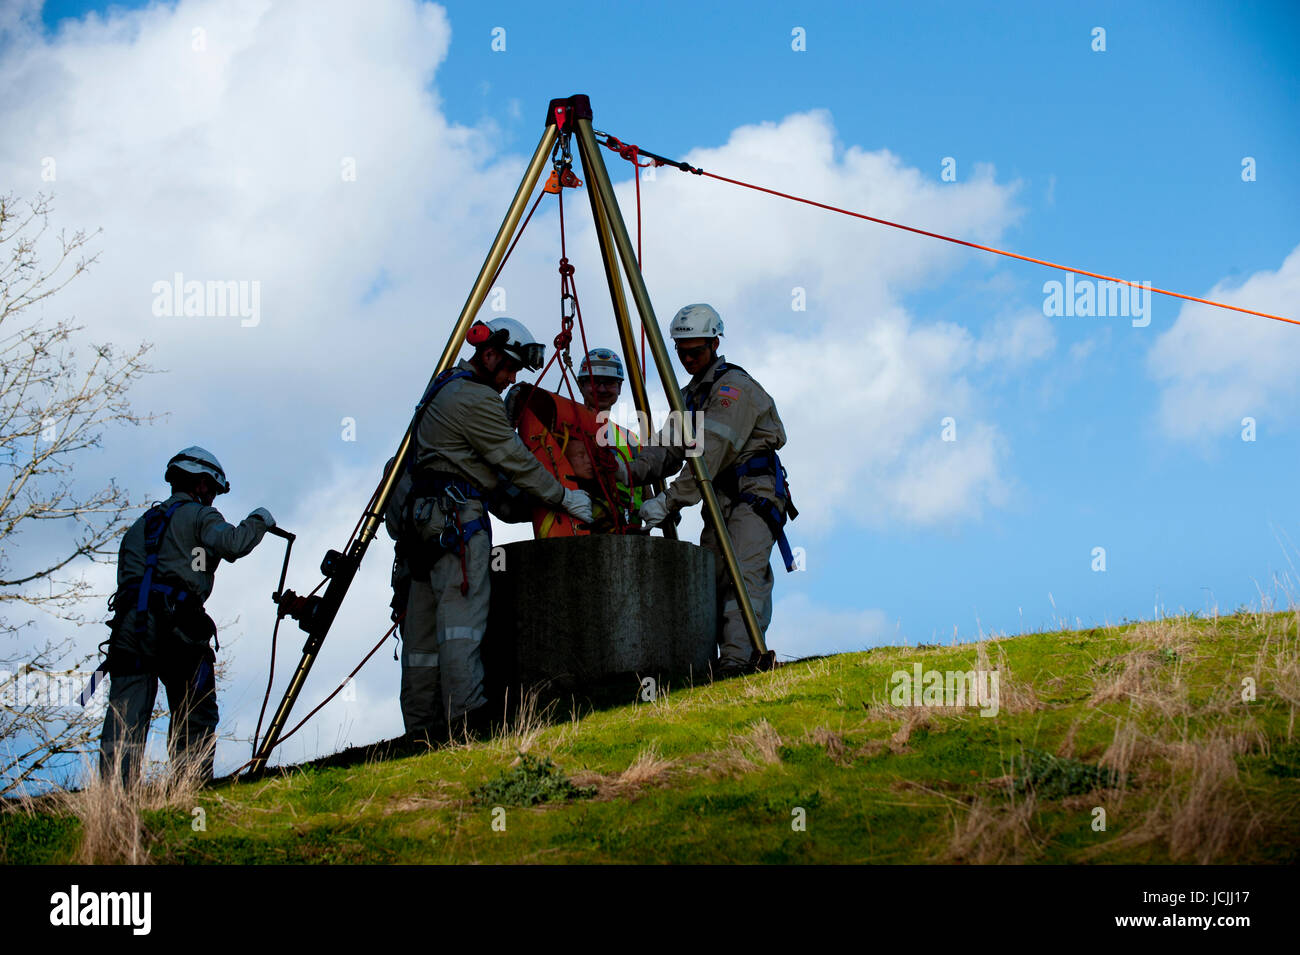 Crews practice trench, pipe, tunnel and confined space rescue at an industrial site. - Stock Image